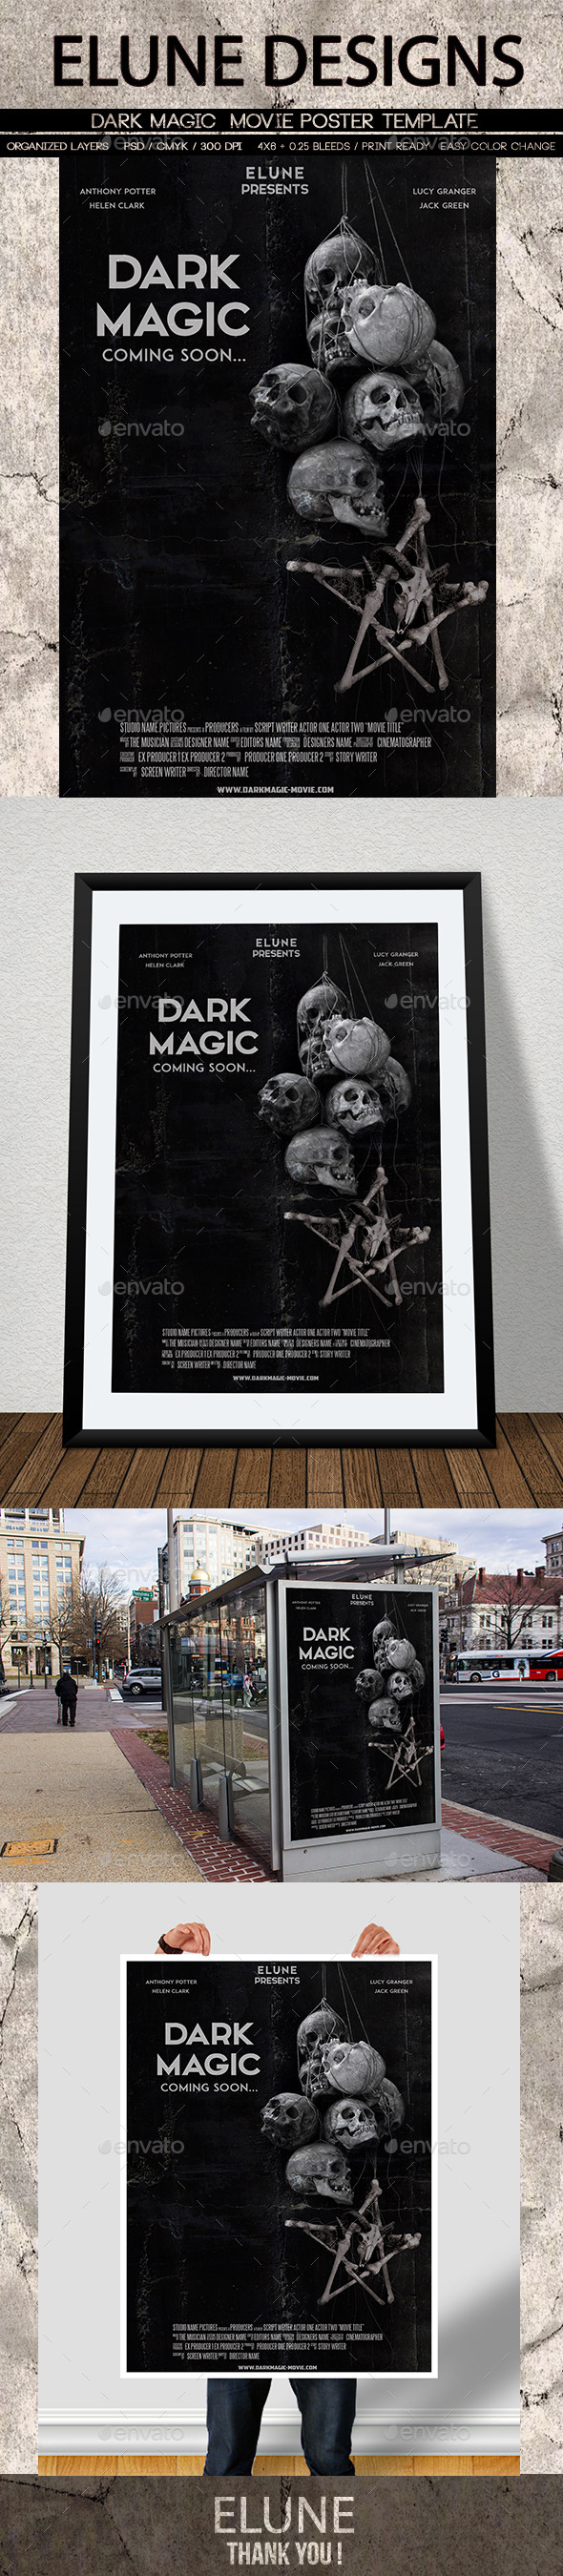 Dark Magic Movie Poster